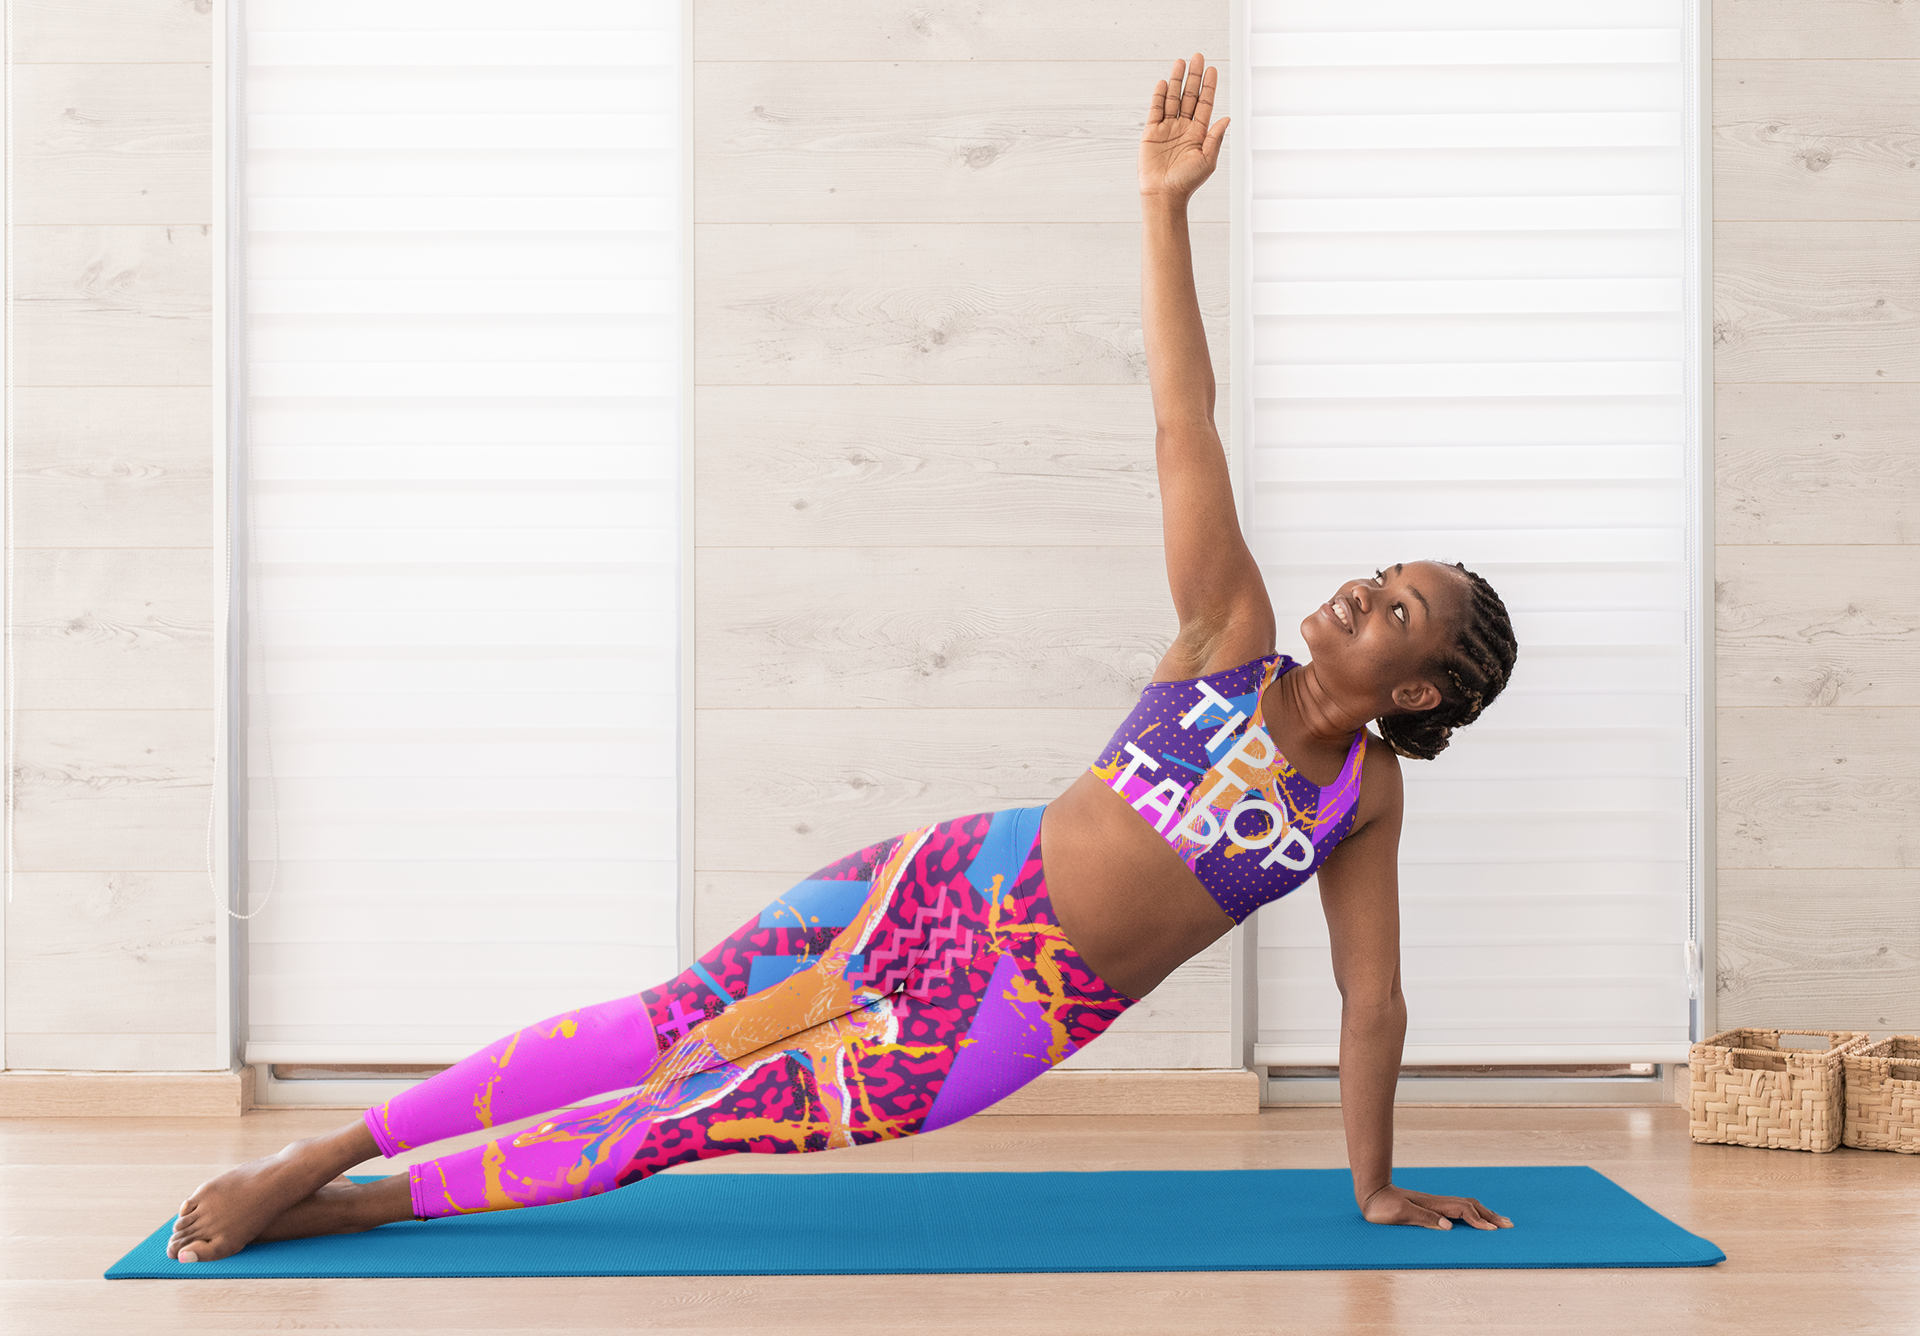 mockup-of-a-woman-doing-yoga-with-a-sports-bra-and-leggings-31096